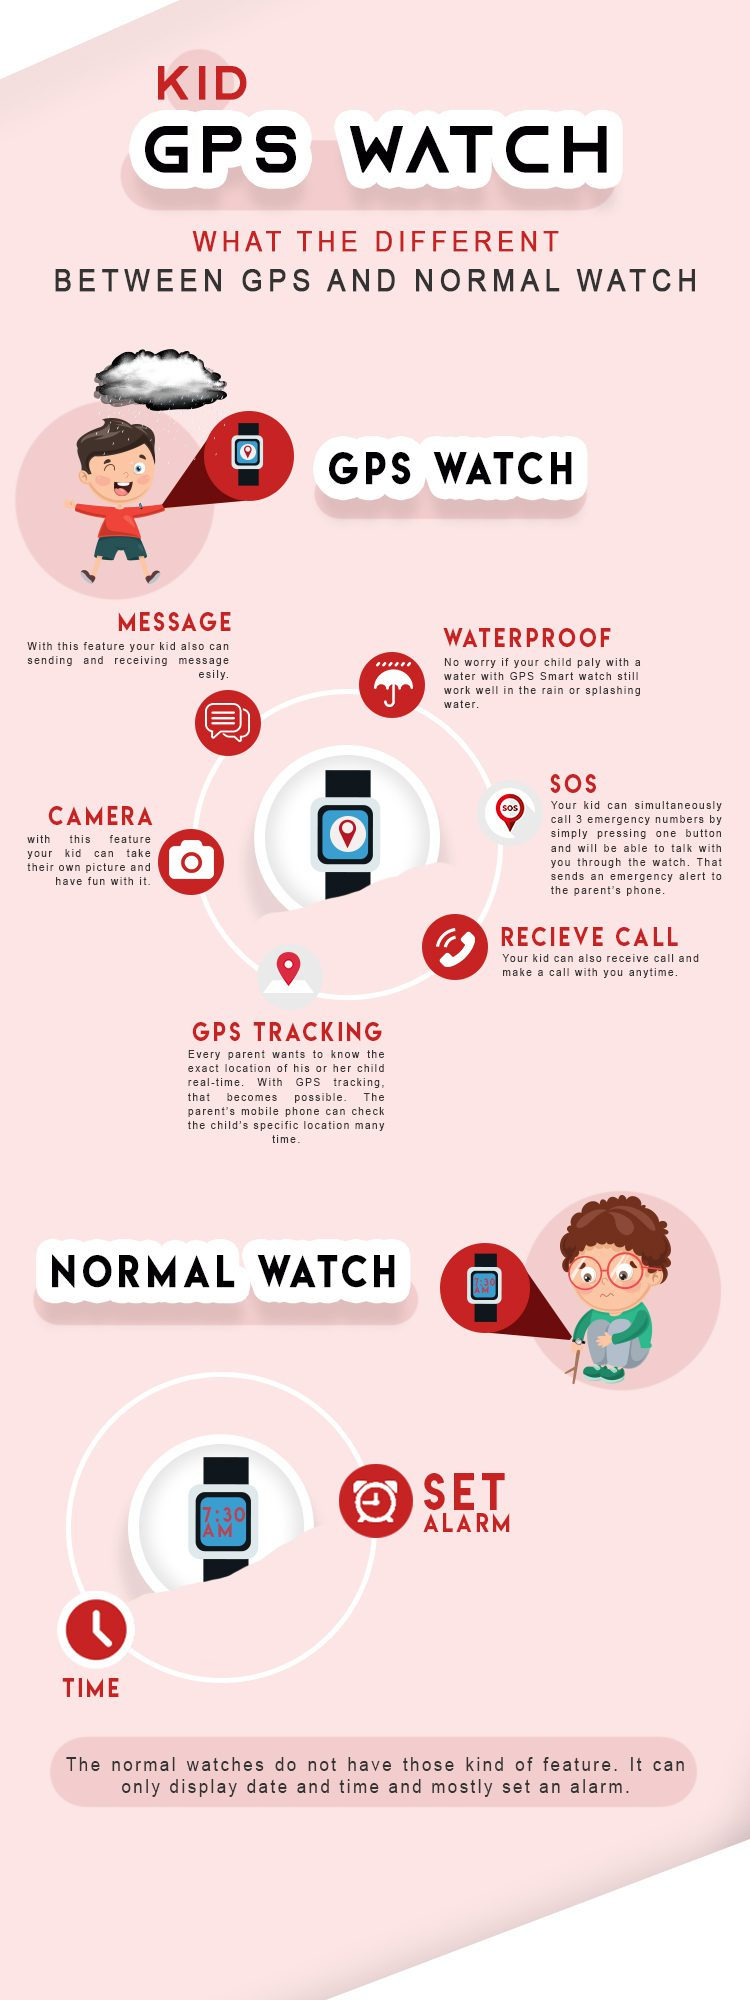 [INFOGRAPHIC] What the different between a kid GPS watch and a normal watch?